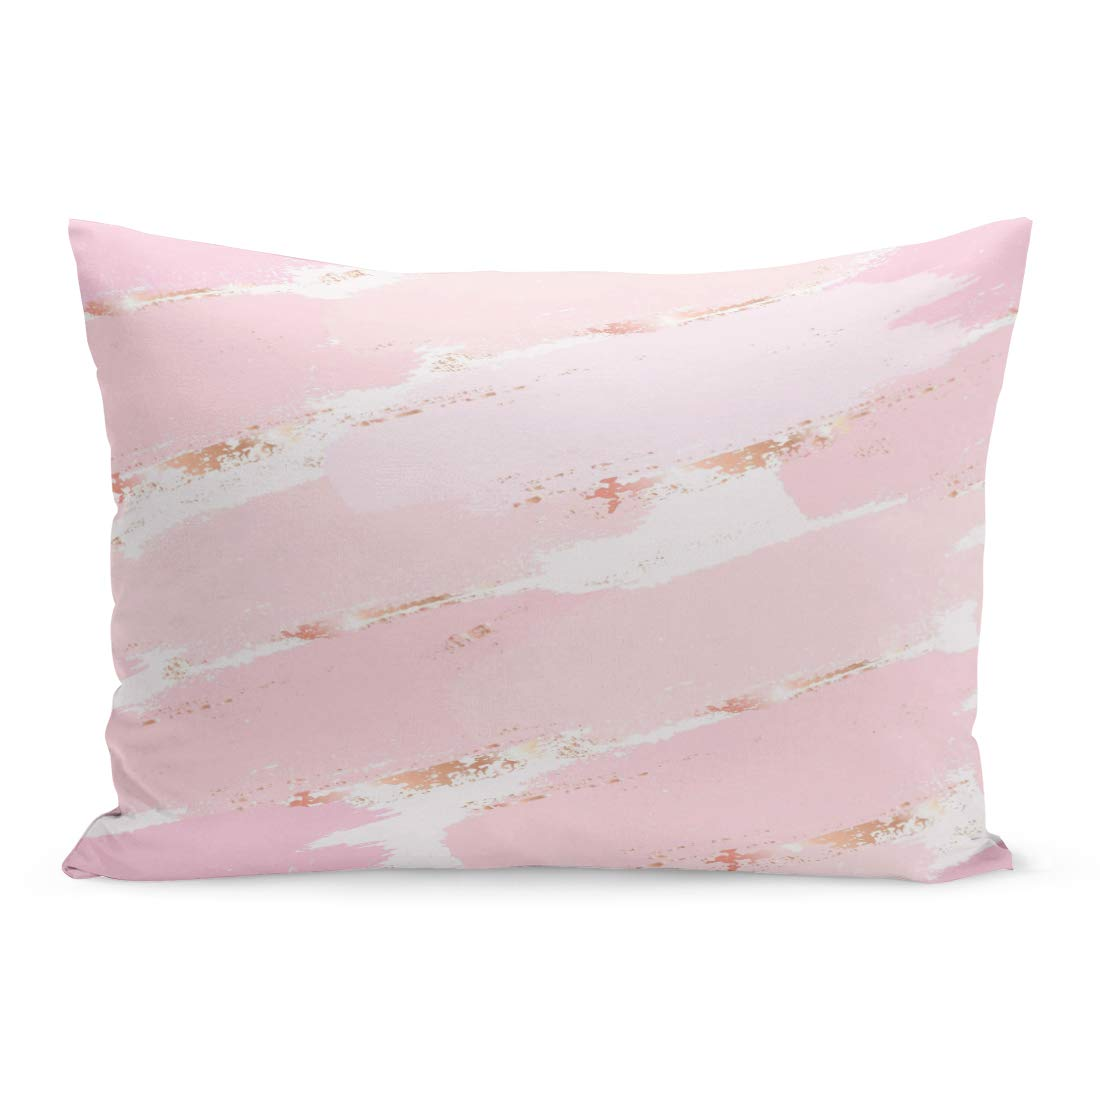 Throw Pillow Cover Pink Rose Gold